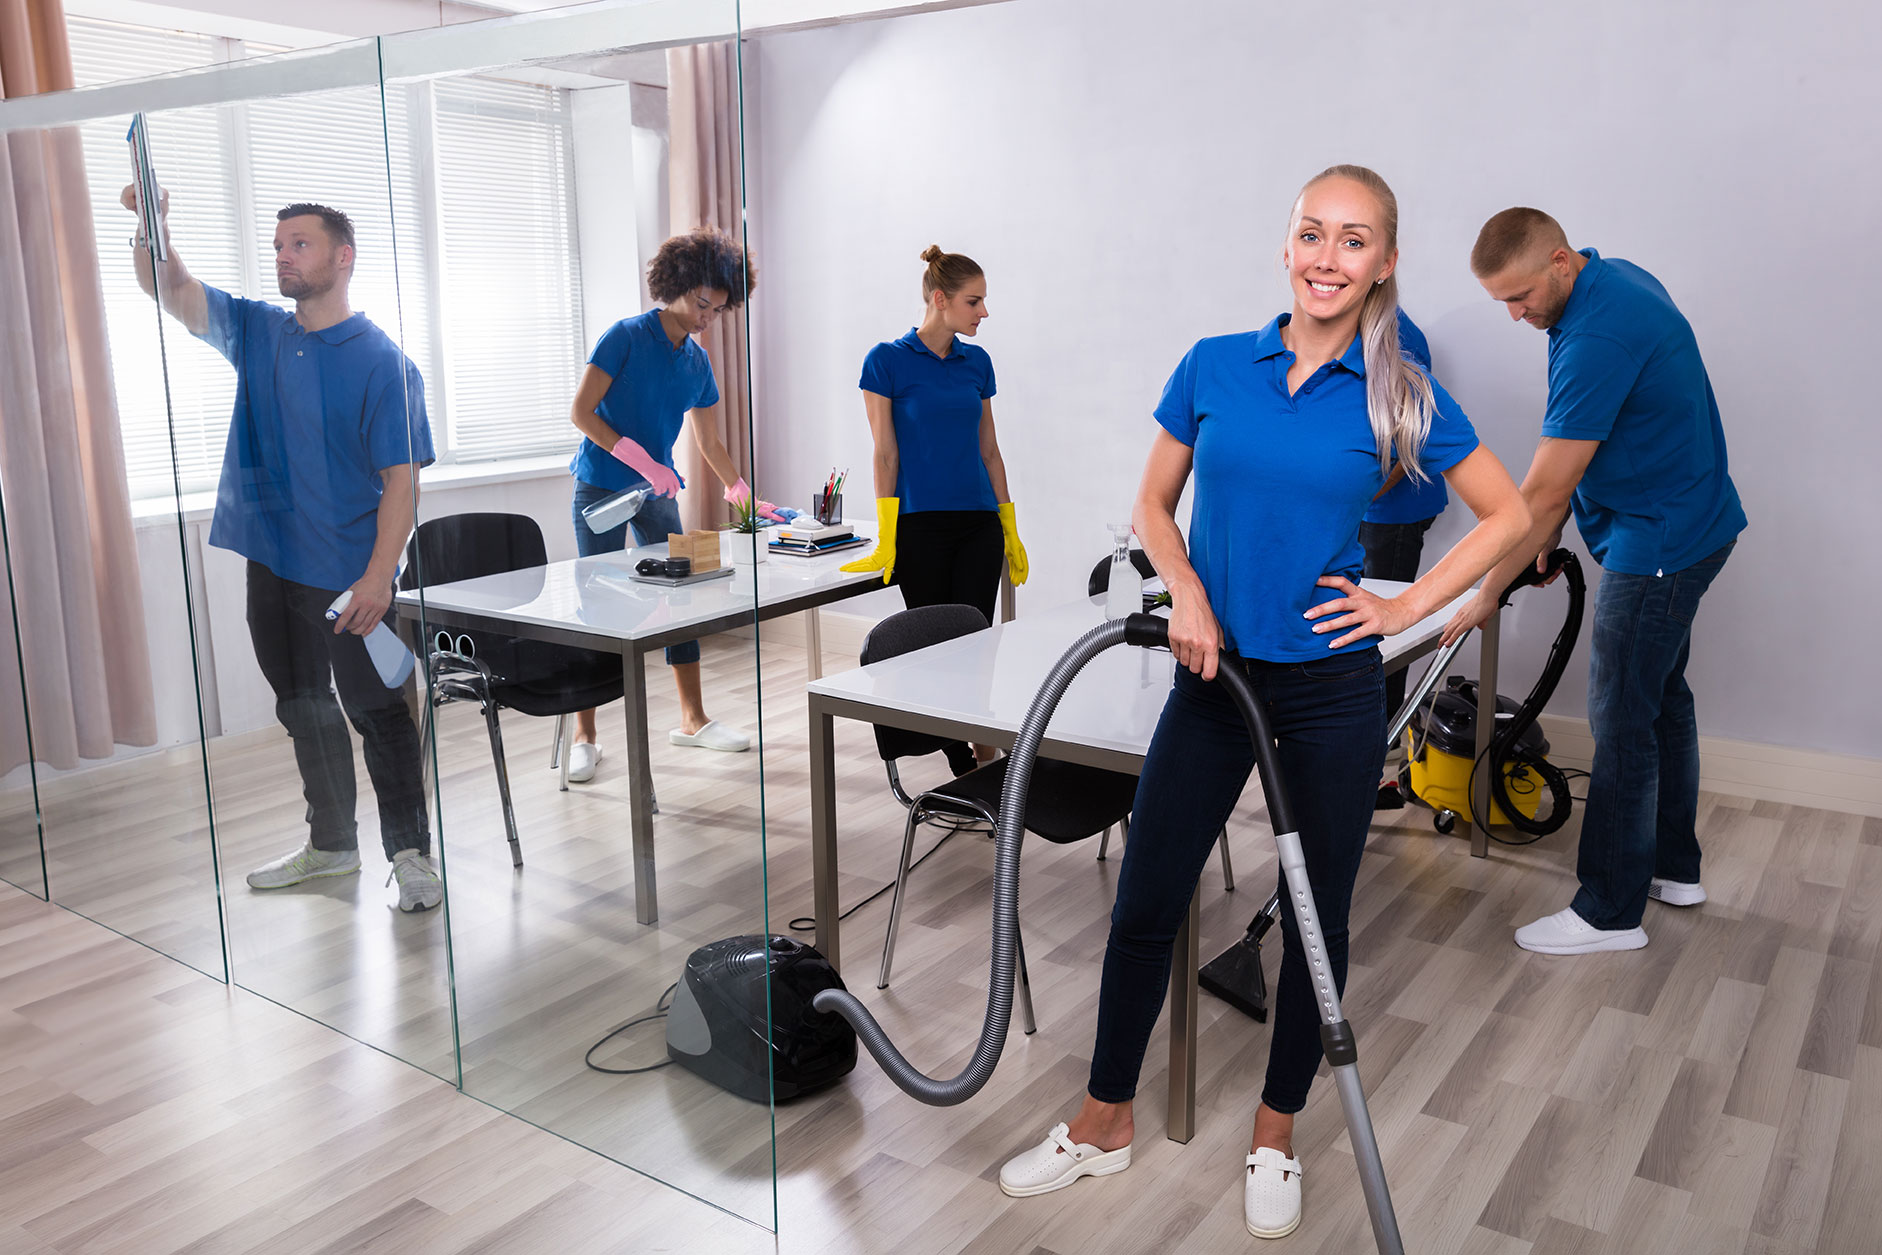 Commercial cleaning team in office